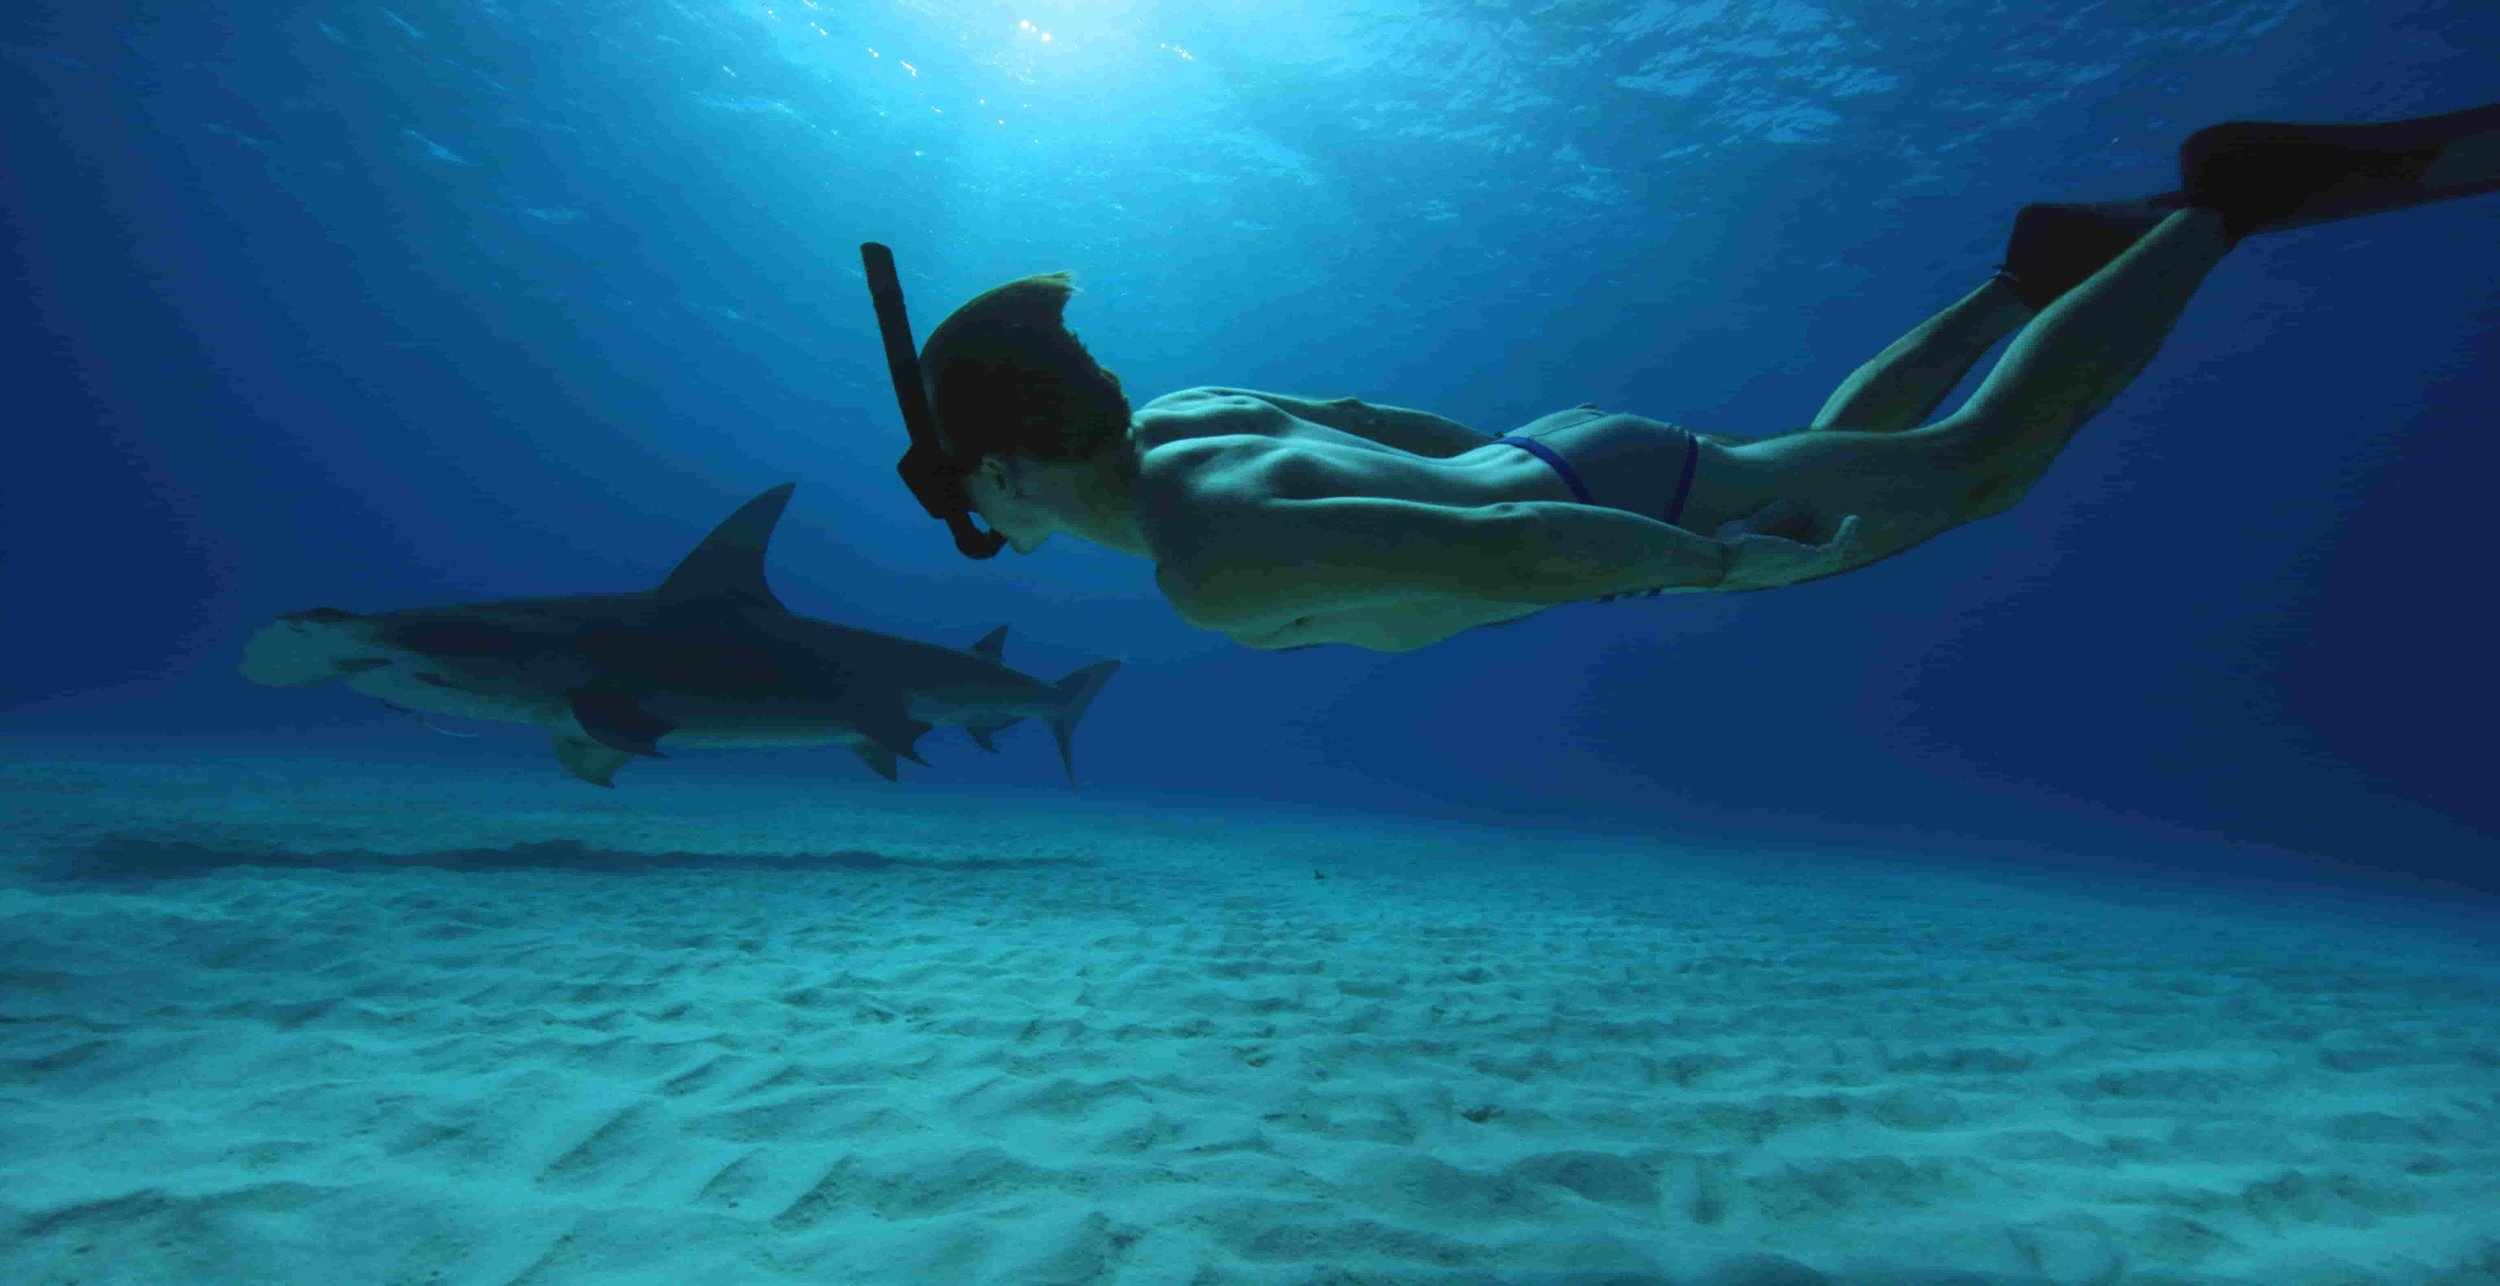 Sharkwater Extinction by Rob Stewart